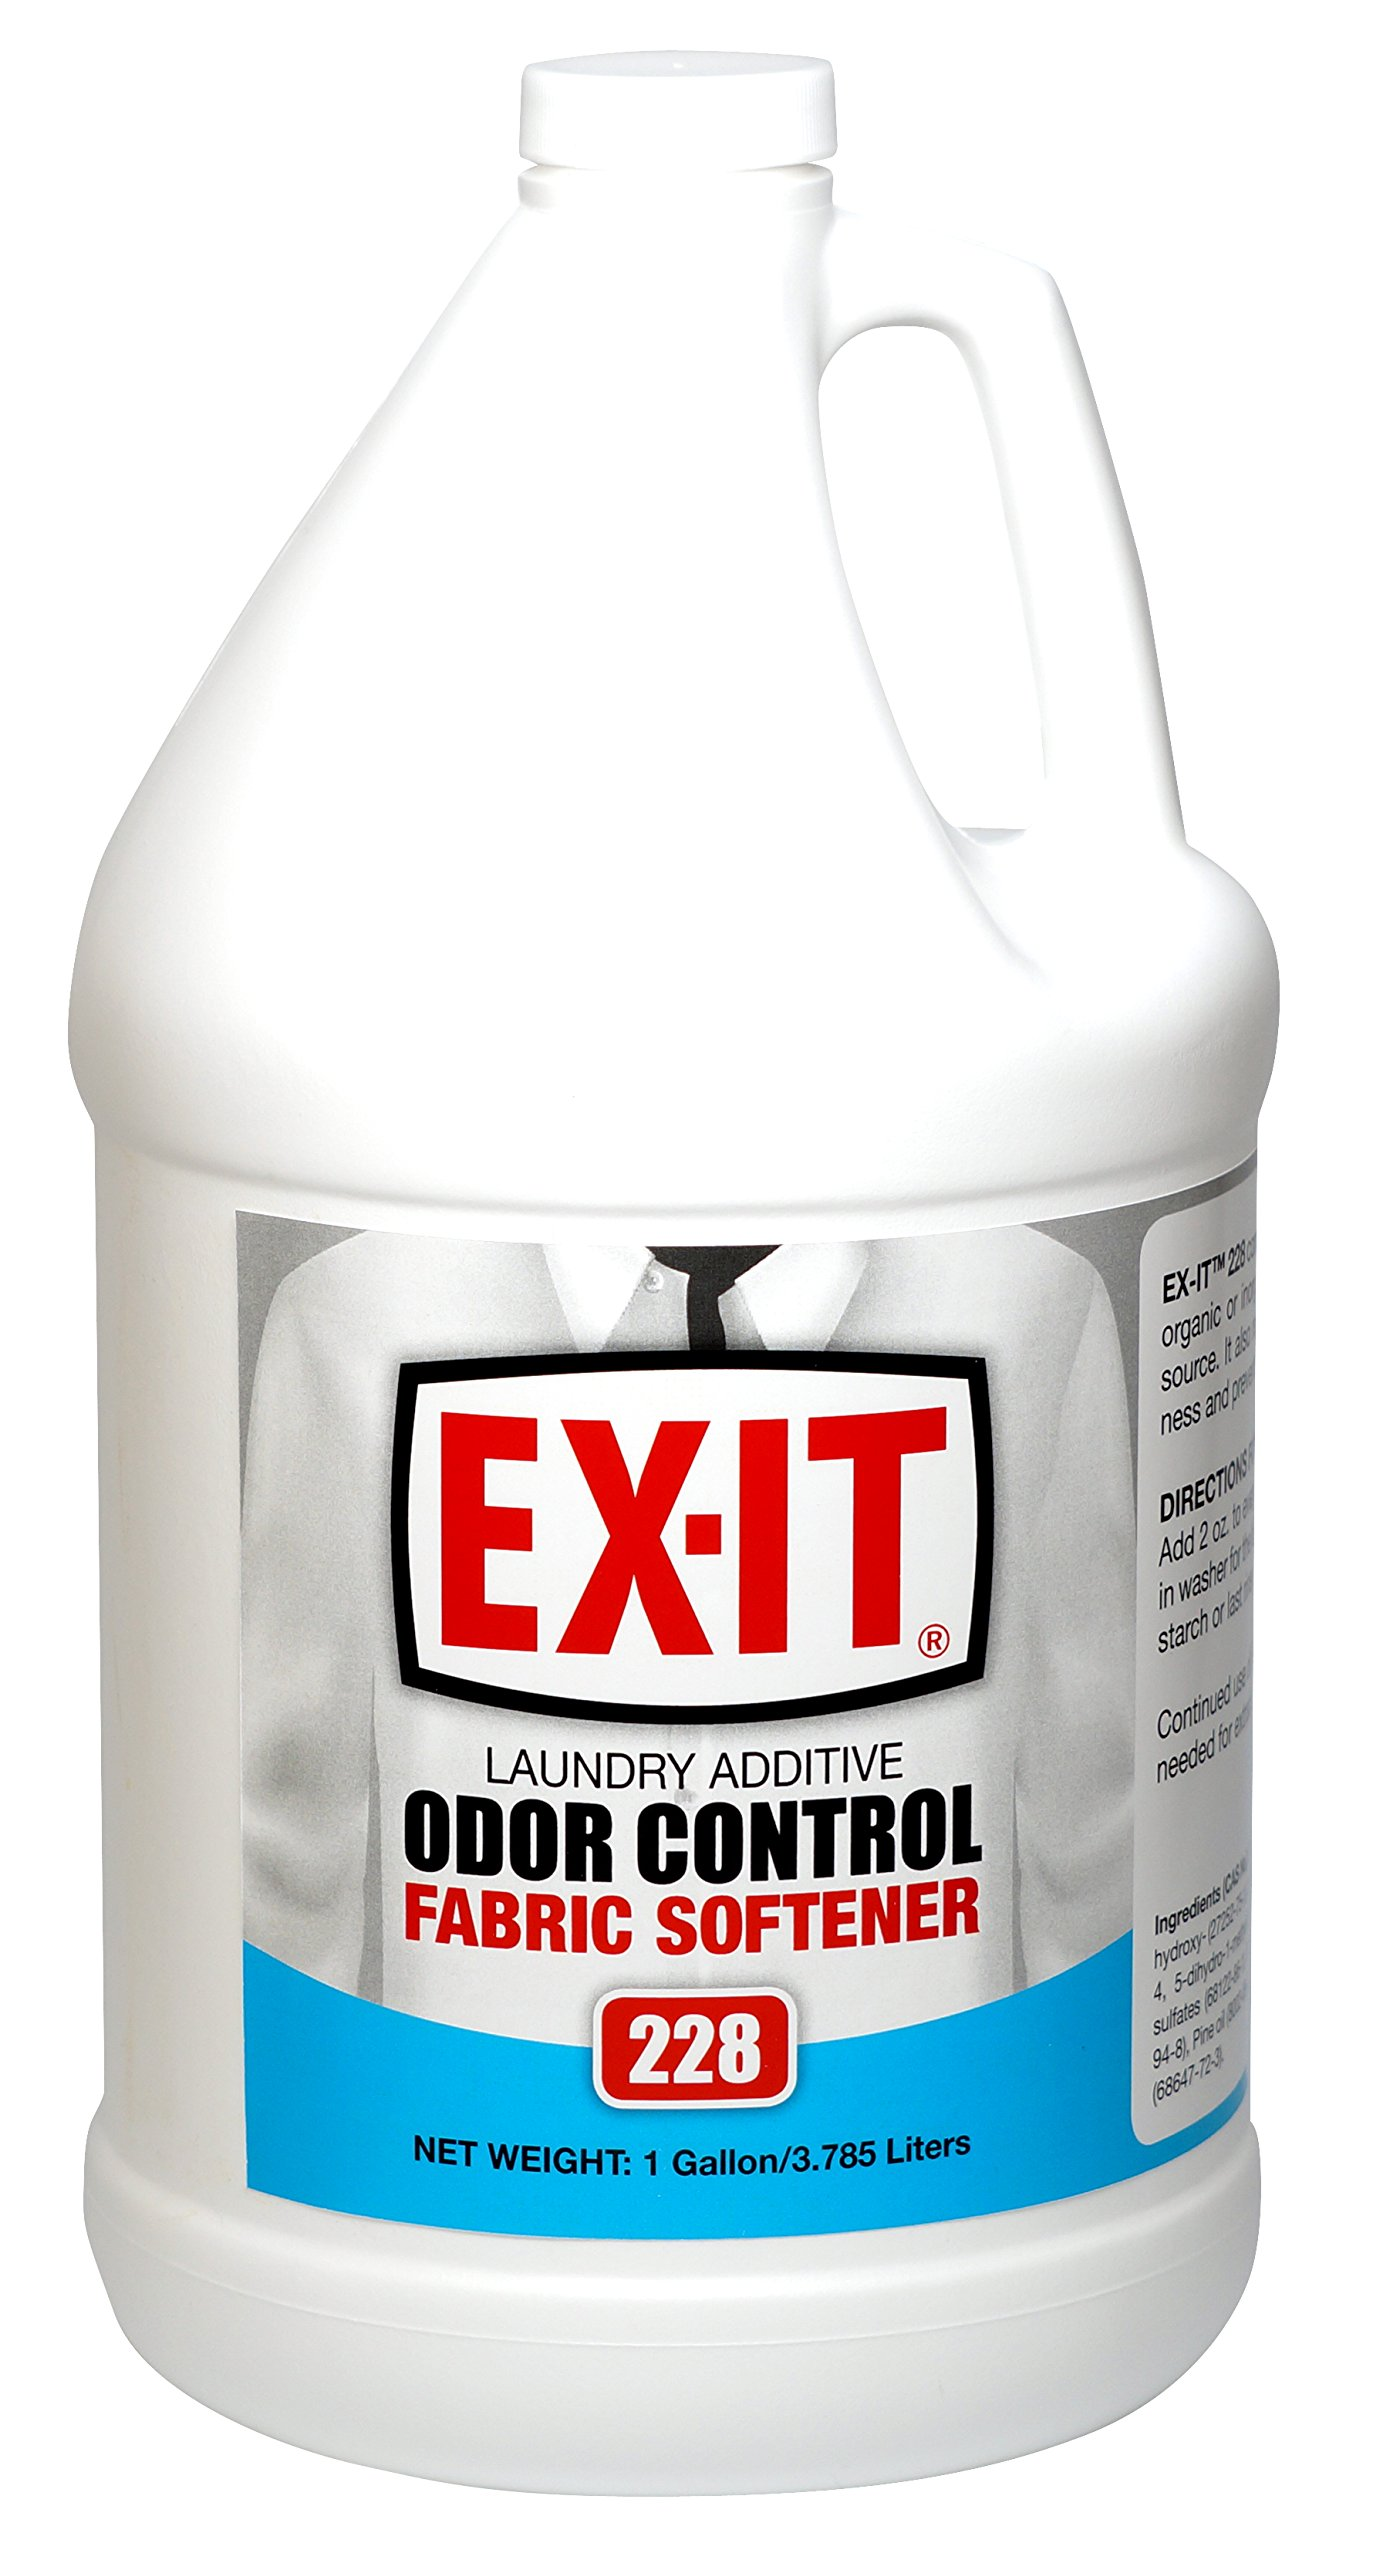 Big D 8228 EX-IT Laundry Additive Odor Control Fabric Softener, 1 Gallon (Pack of 4) - For professional and institutional launderers